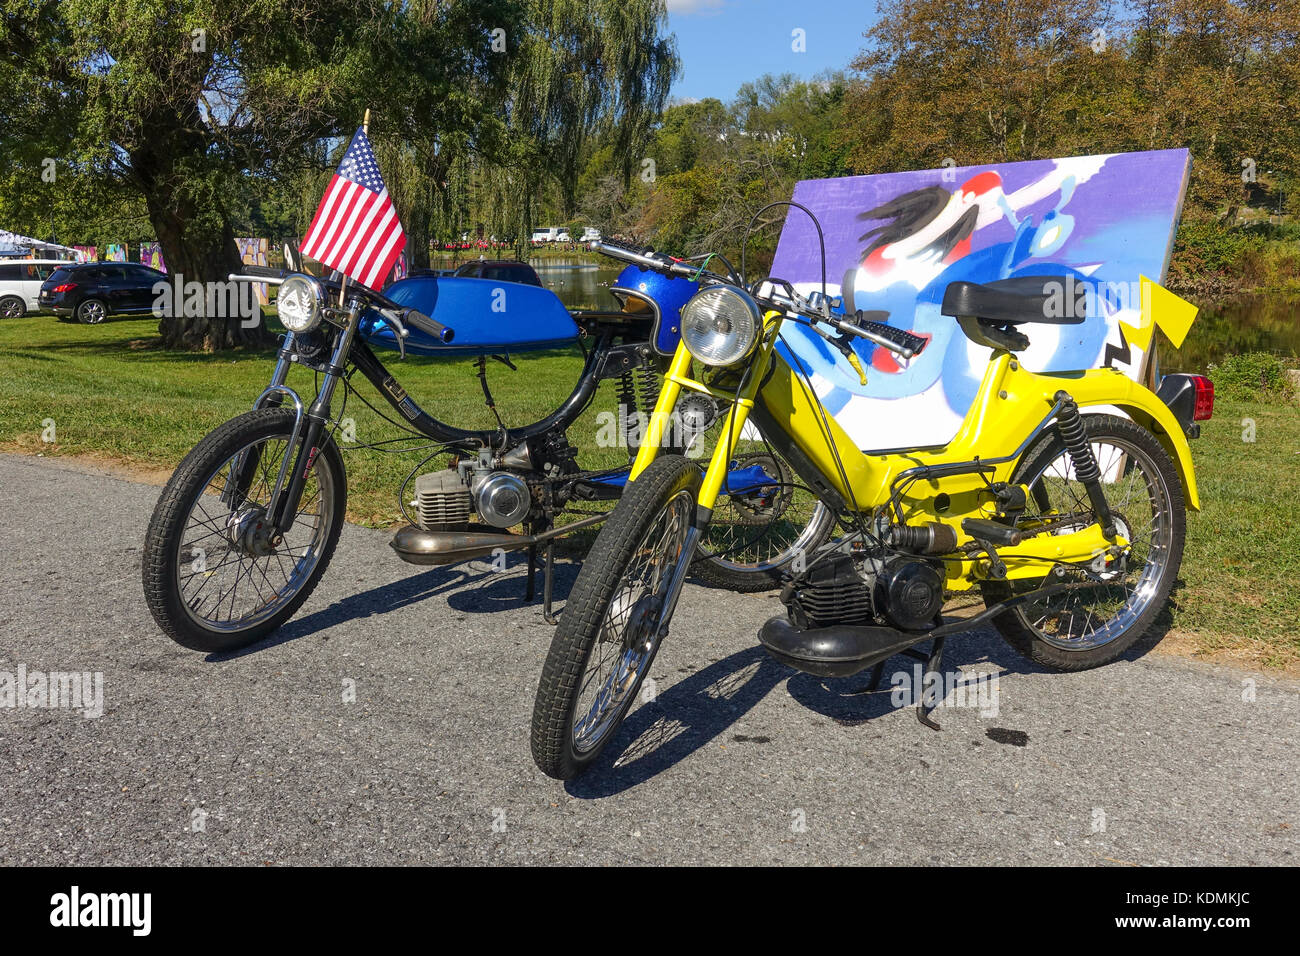 Mopeds, Puch magnum and Puch Maxi classic mopeds, United